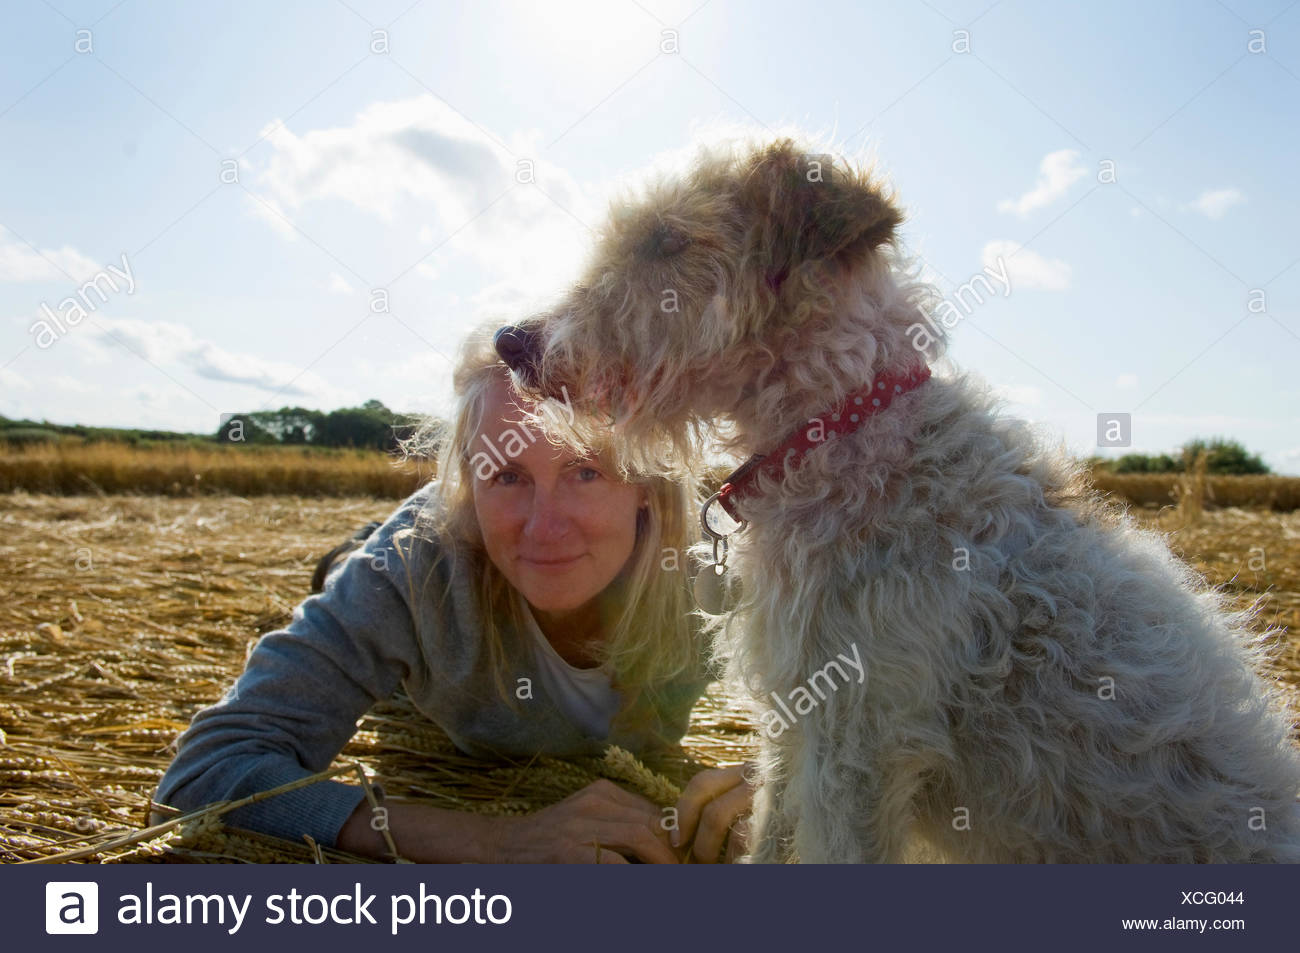 A small dog sitting and looking into the distance. A woman beside him on the group. Harvest. - Stock Image